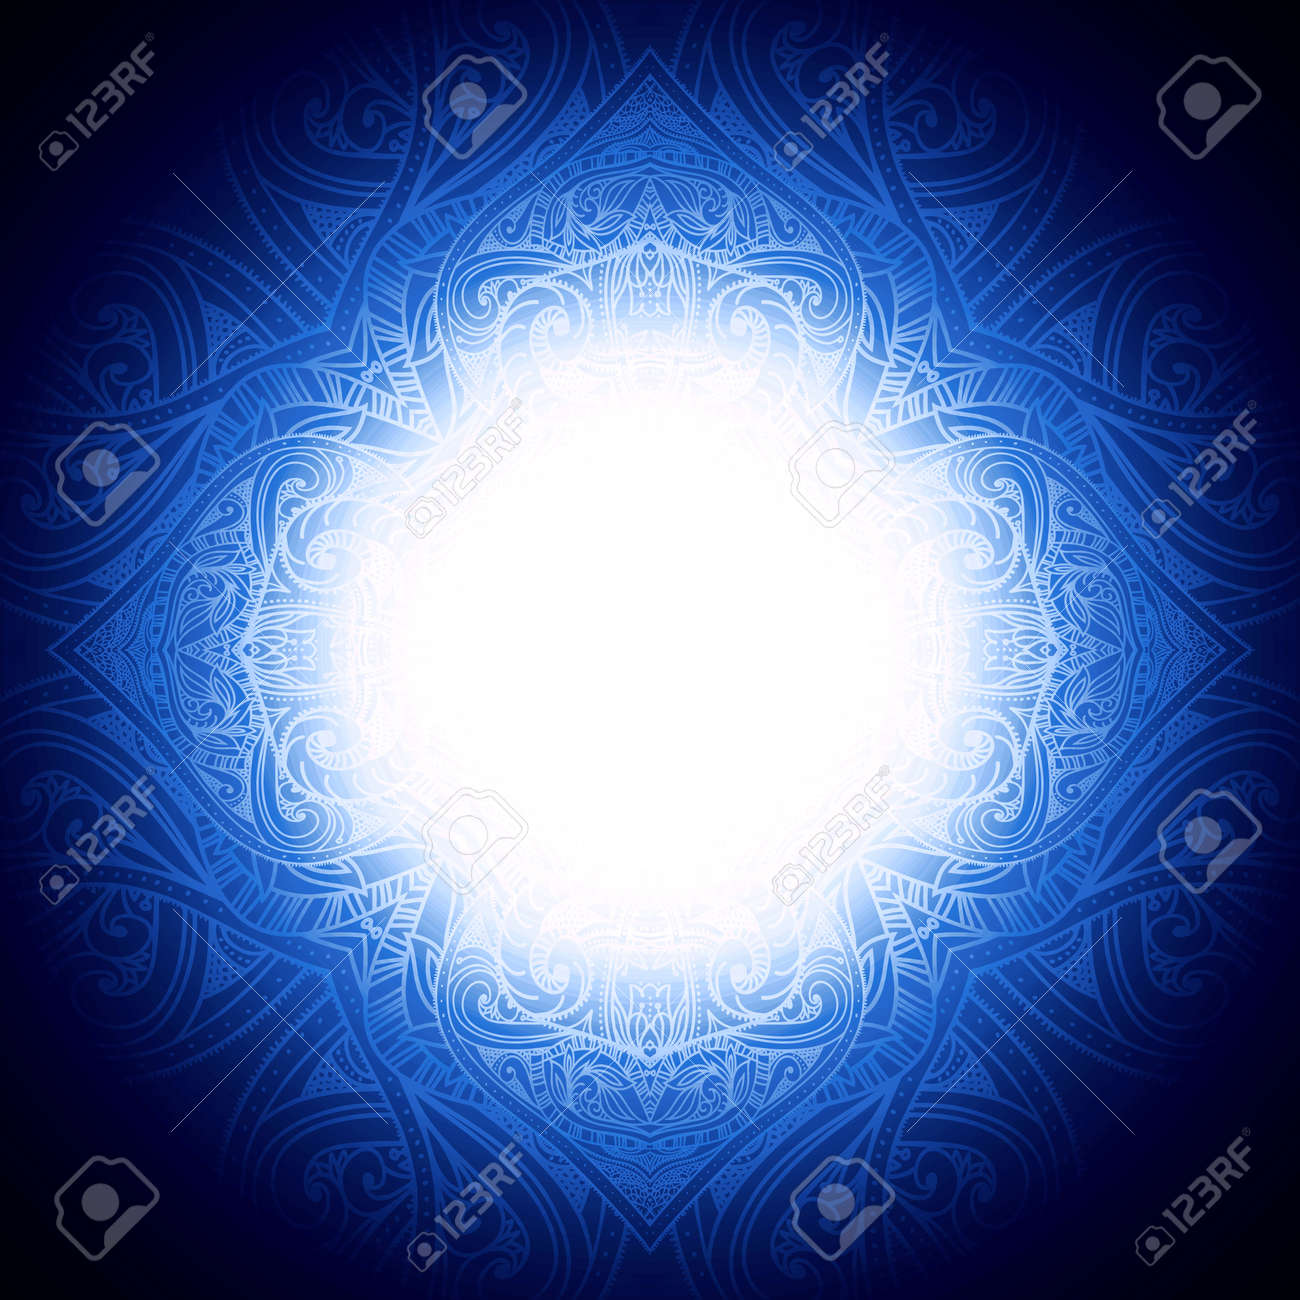 Abstract Background With Floral Frame. Can Be Used For Islamic ...